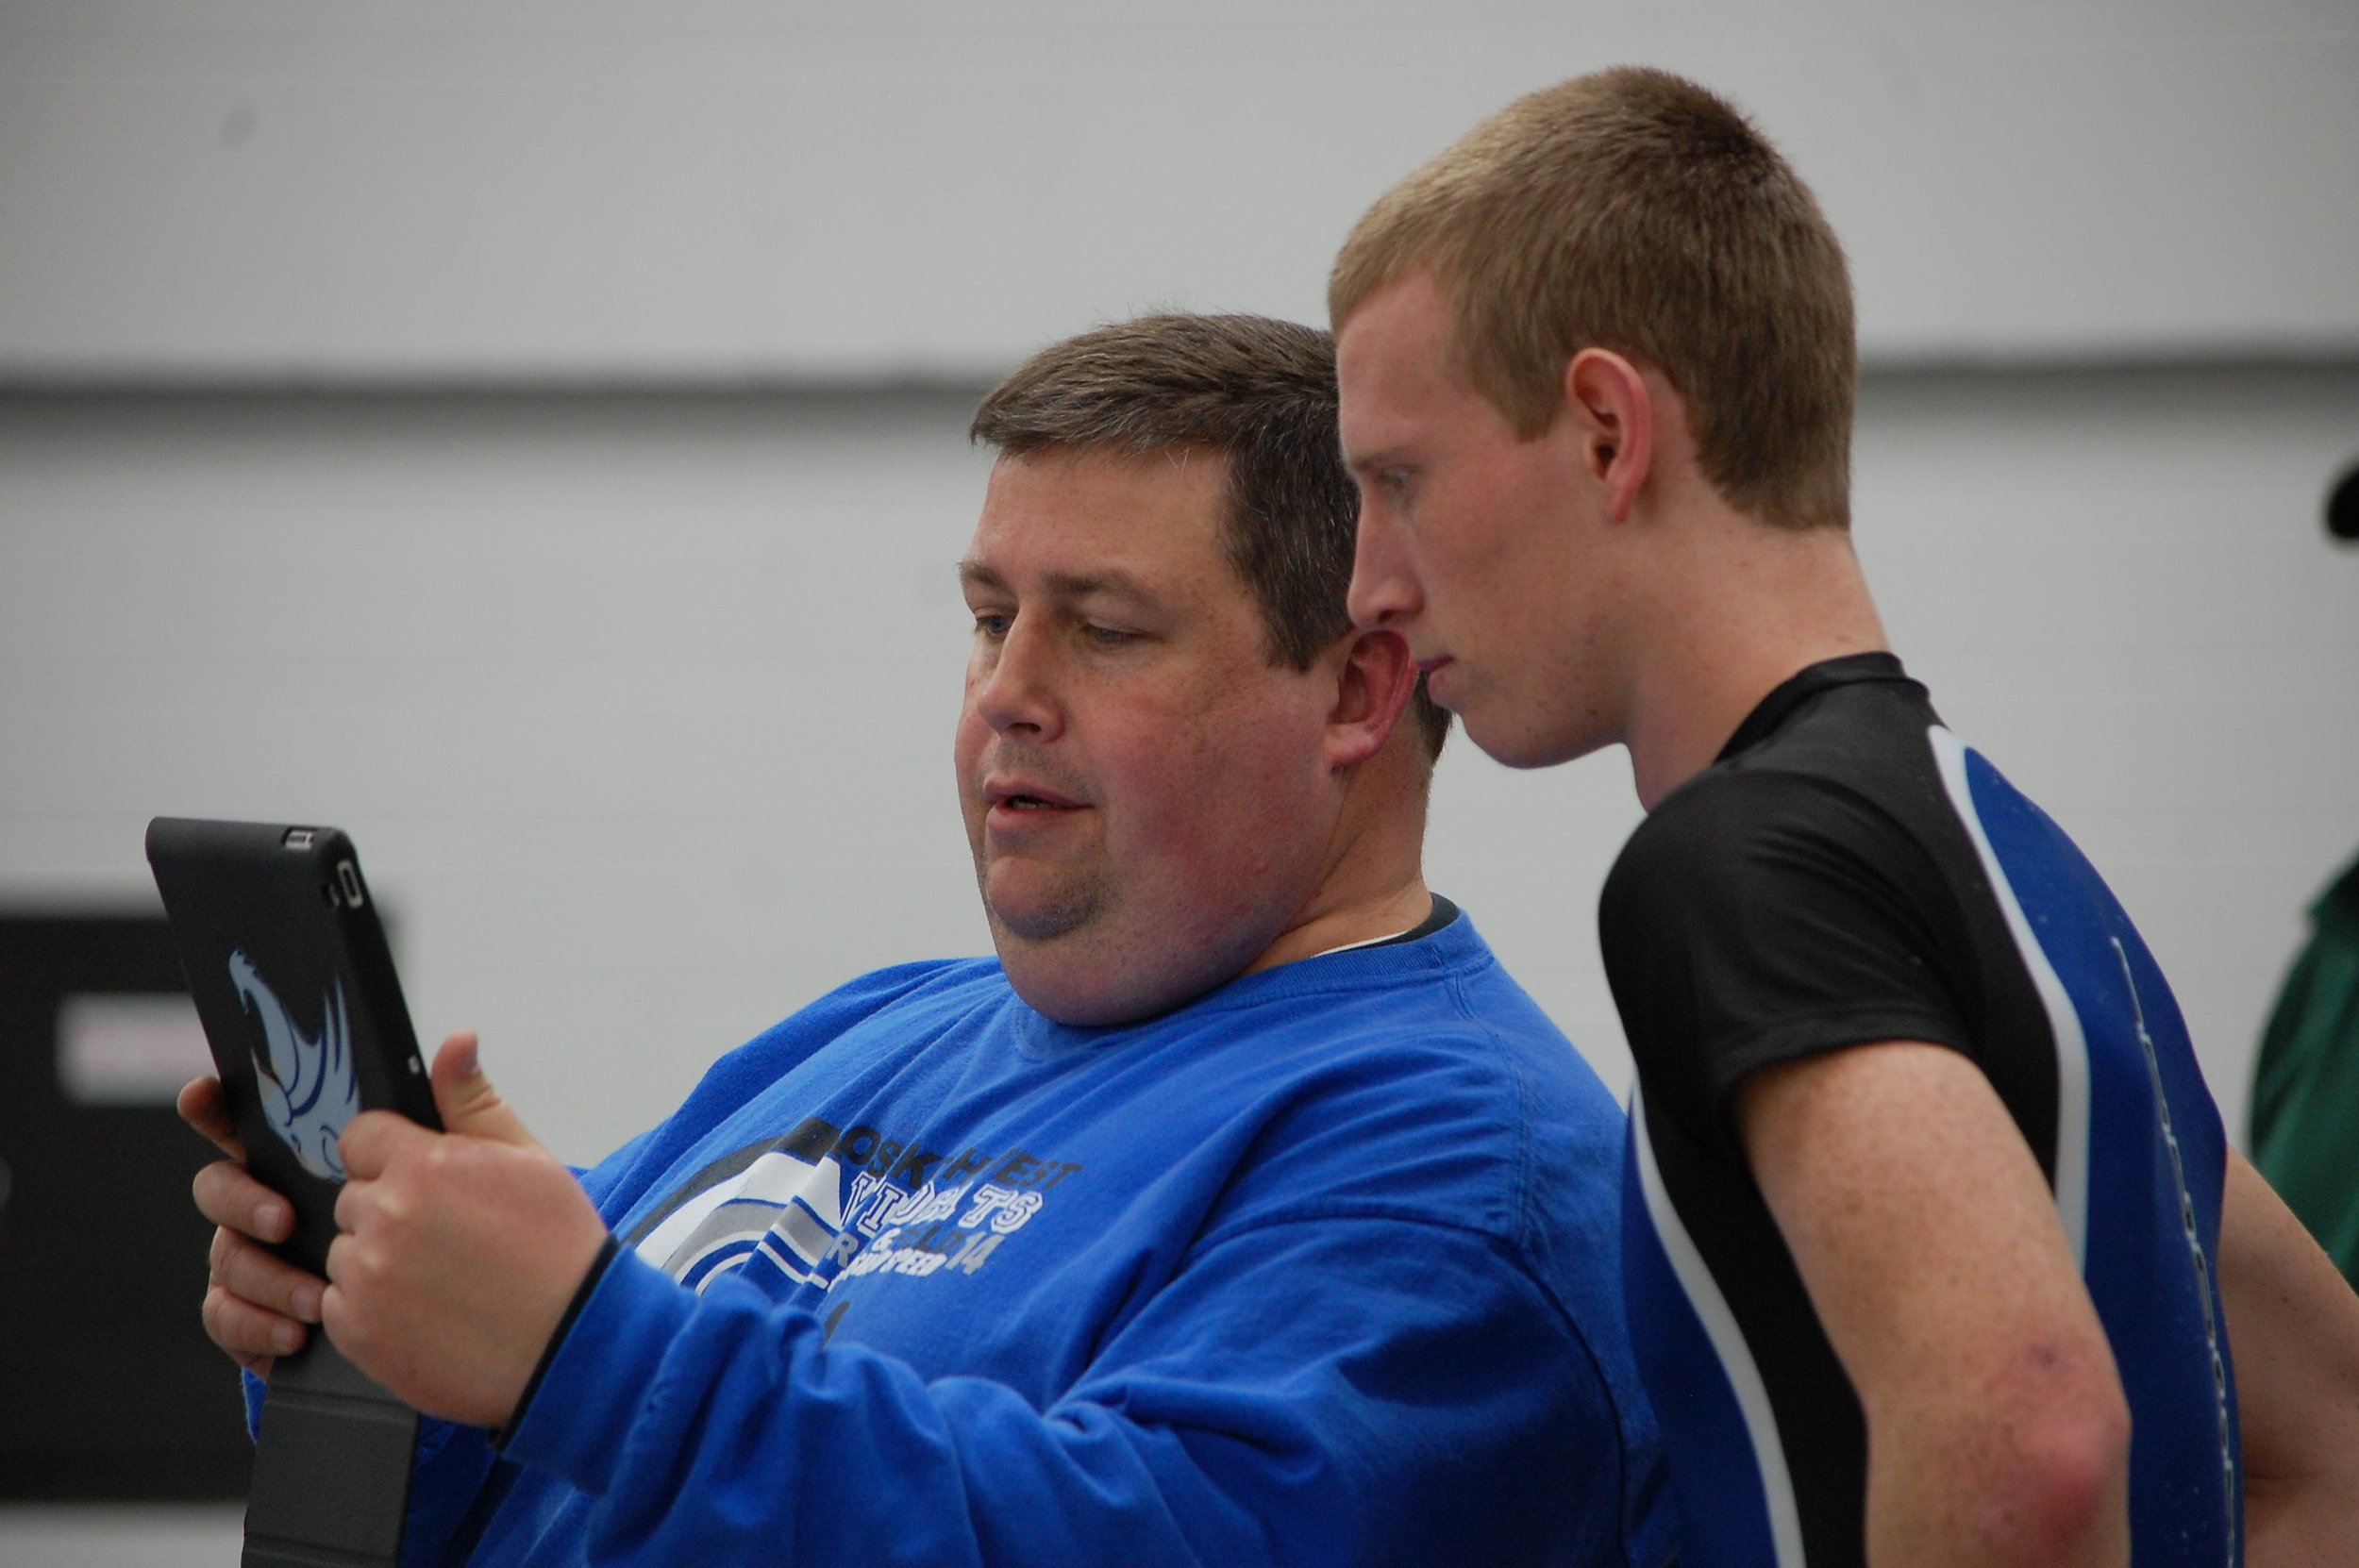 Head coach James Dean shows Joe Vils a video of his high jump in order to better his technique.